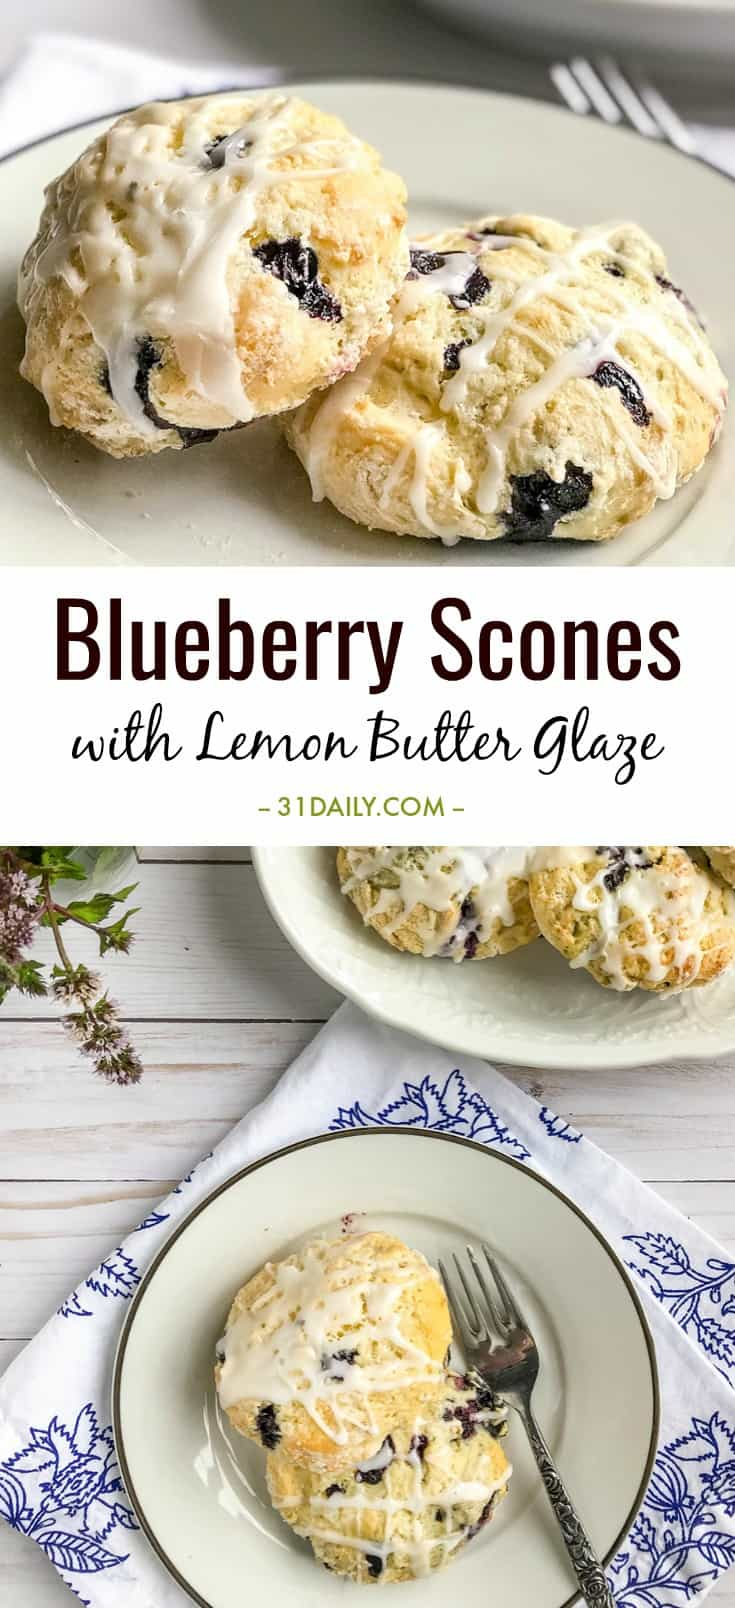 Blueberry Scones with Lemon Butter Glaze | 31Daily.com